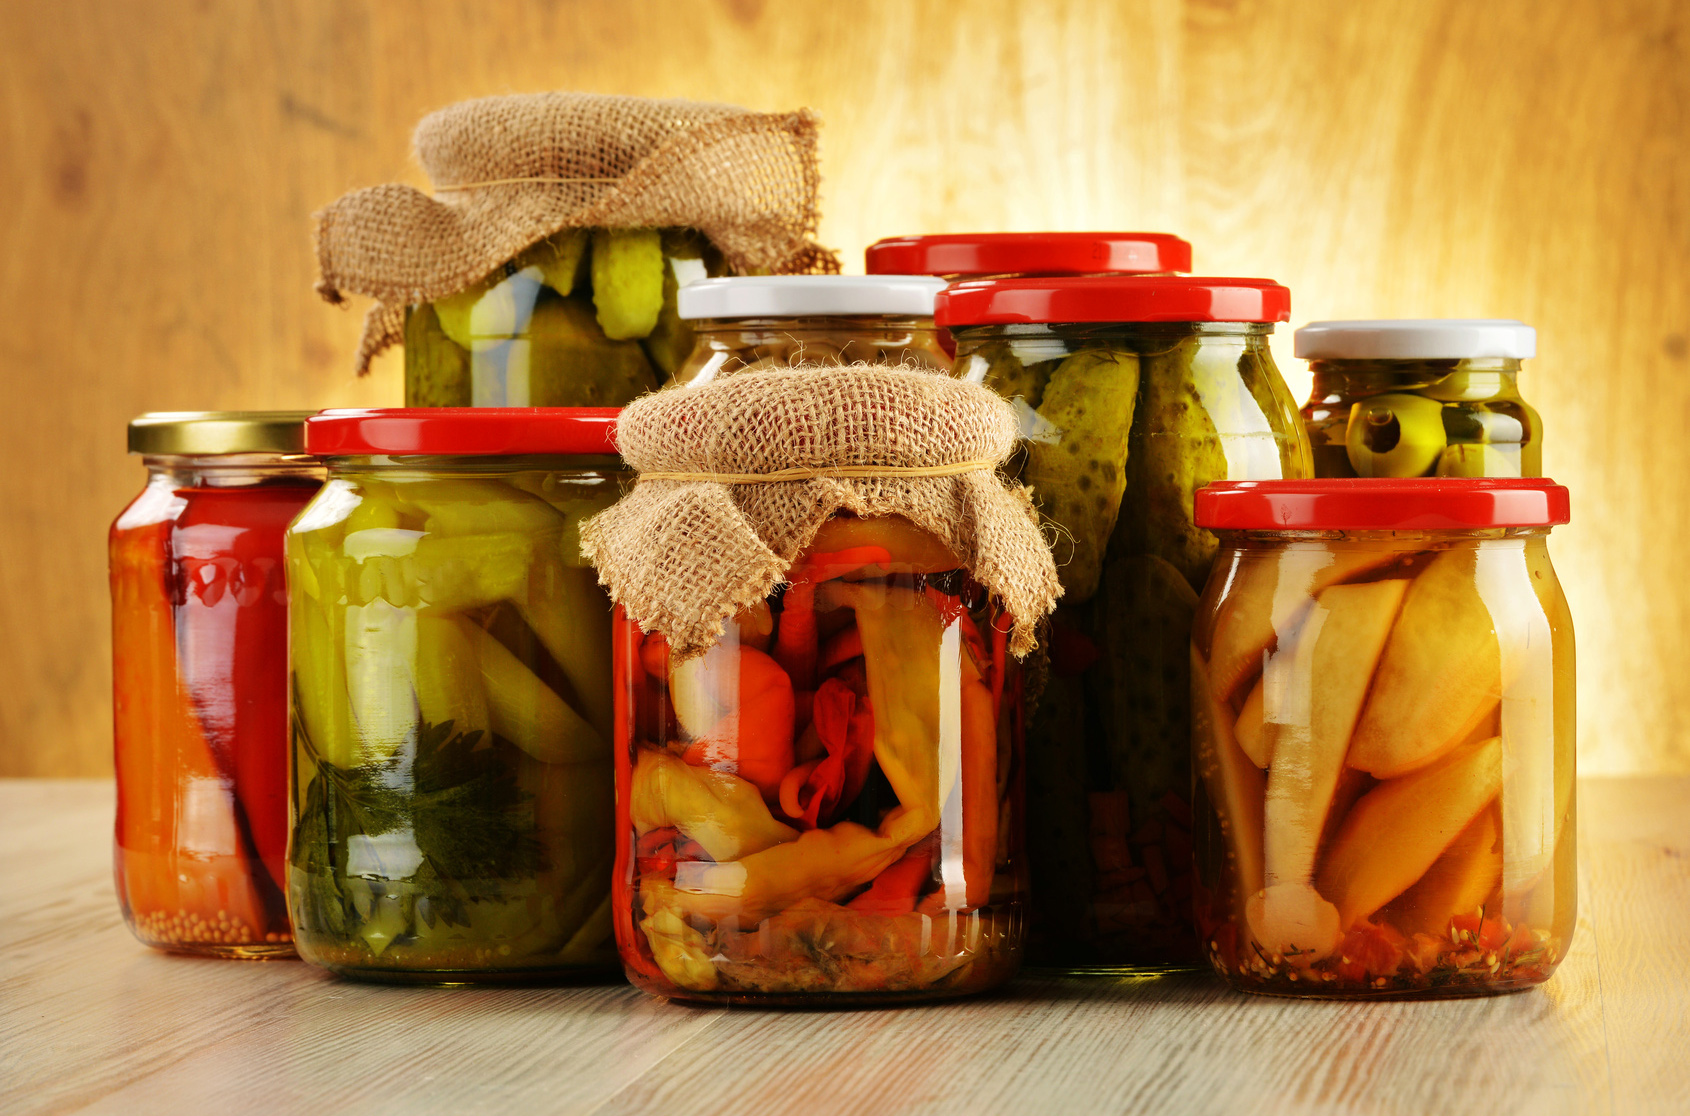 Dr. C's Top 3: Fermented Foods - Dr. Becky Campbell